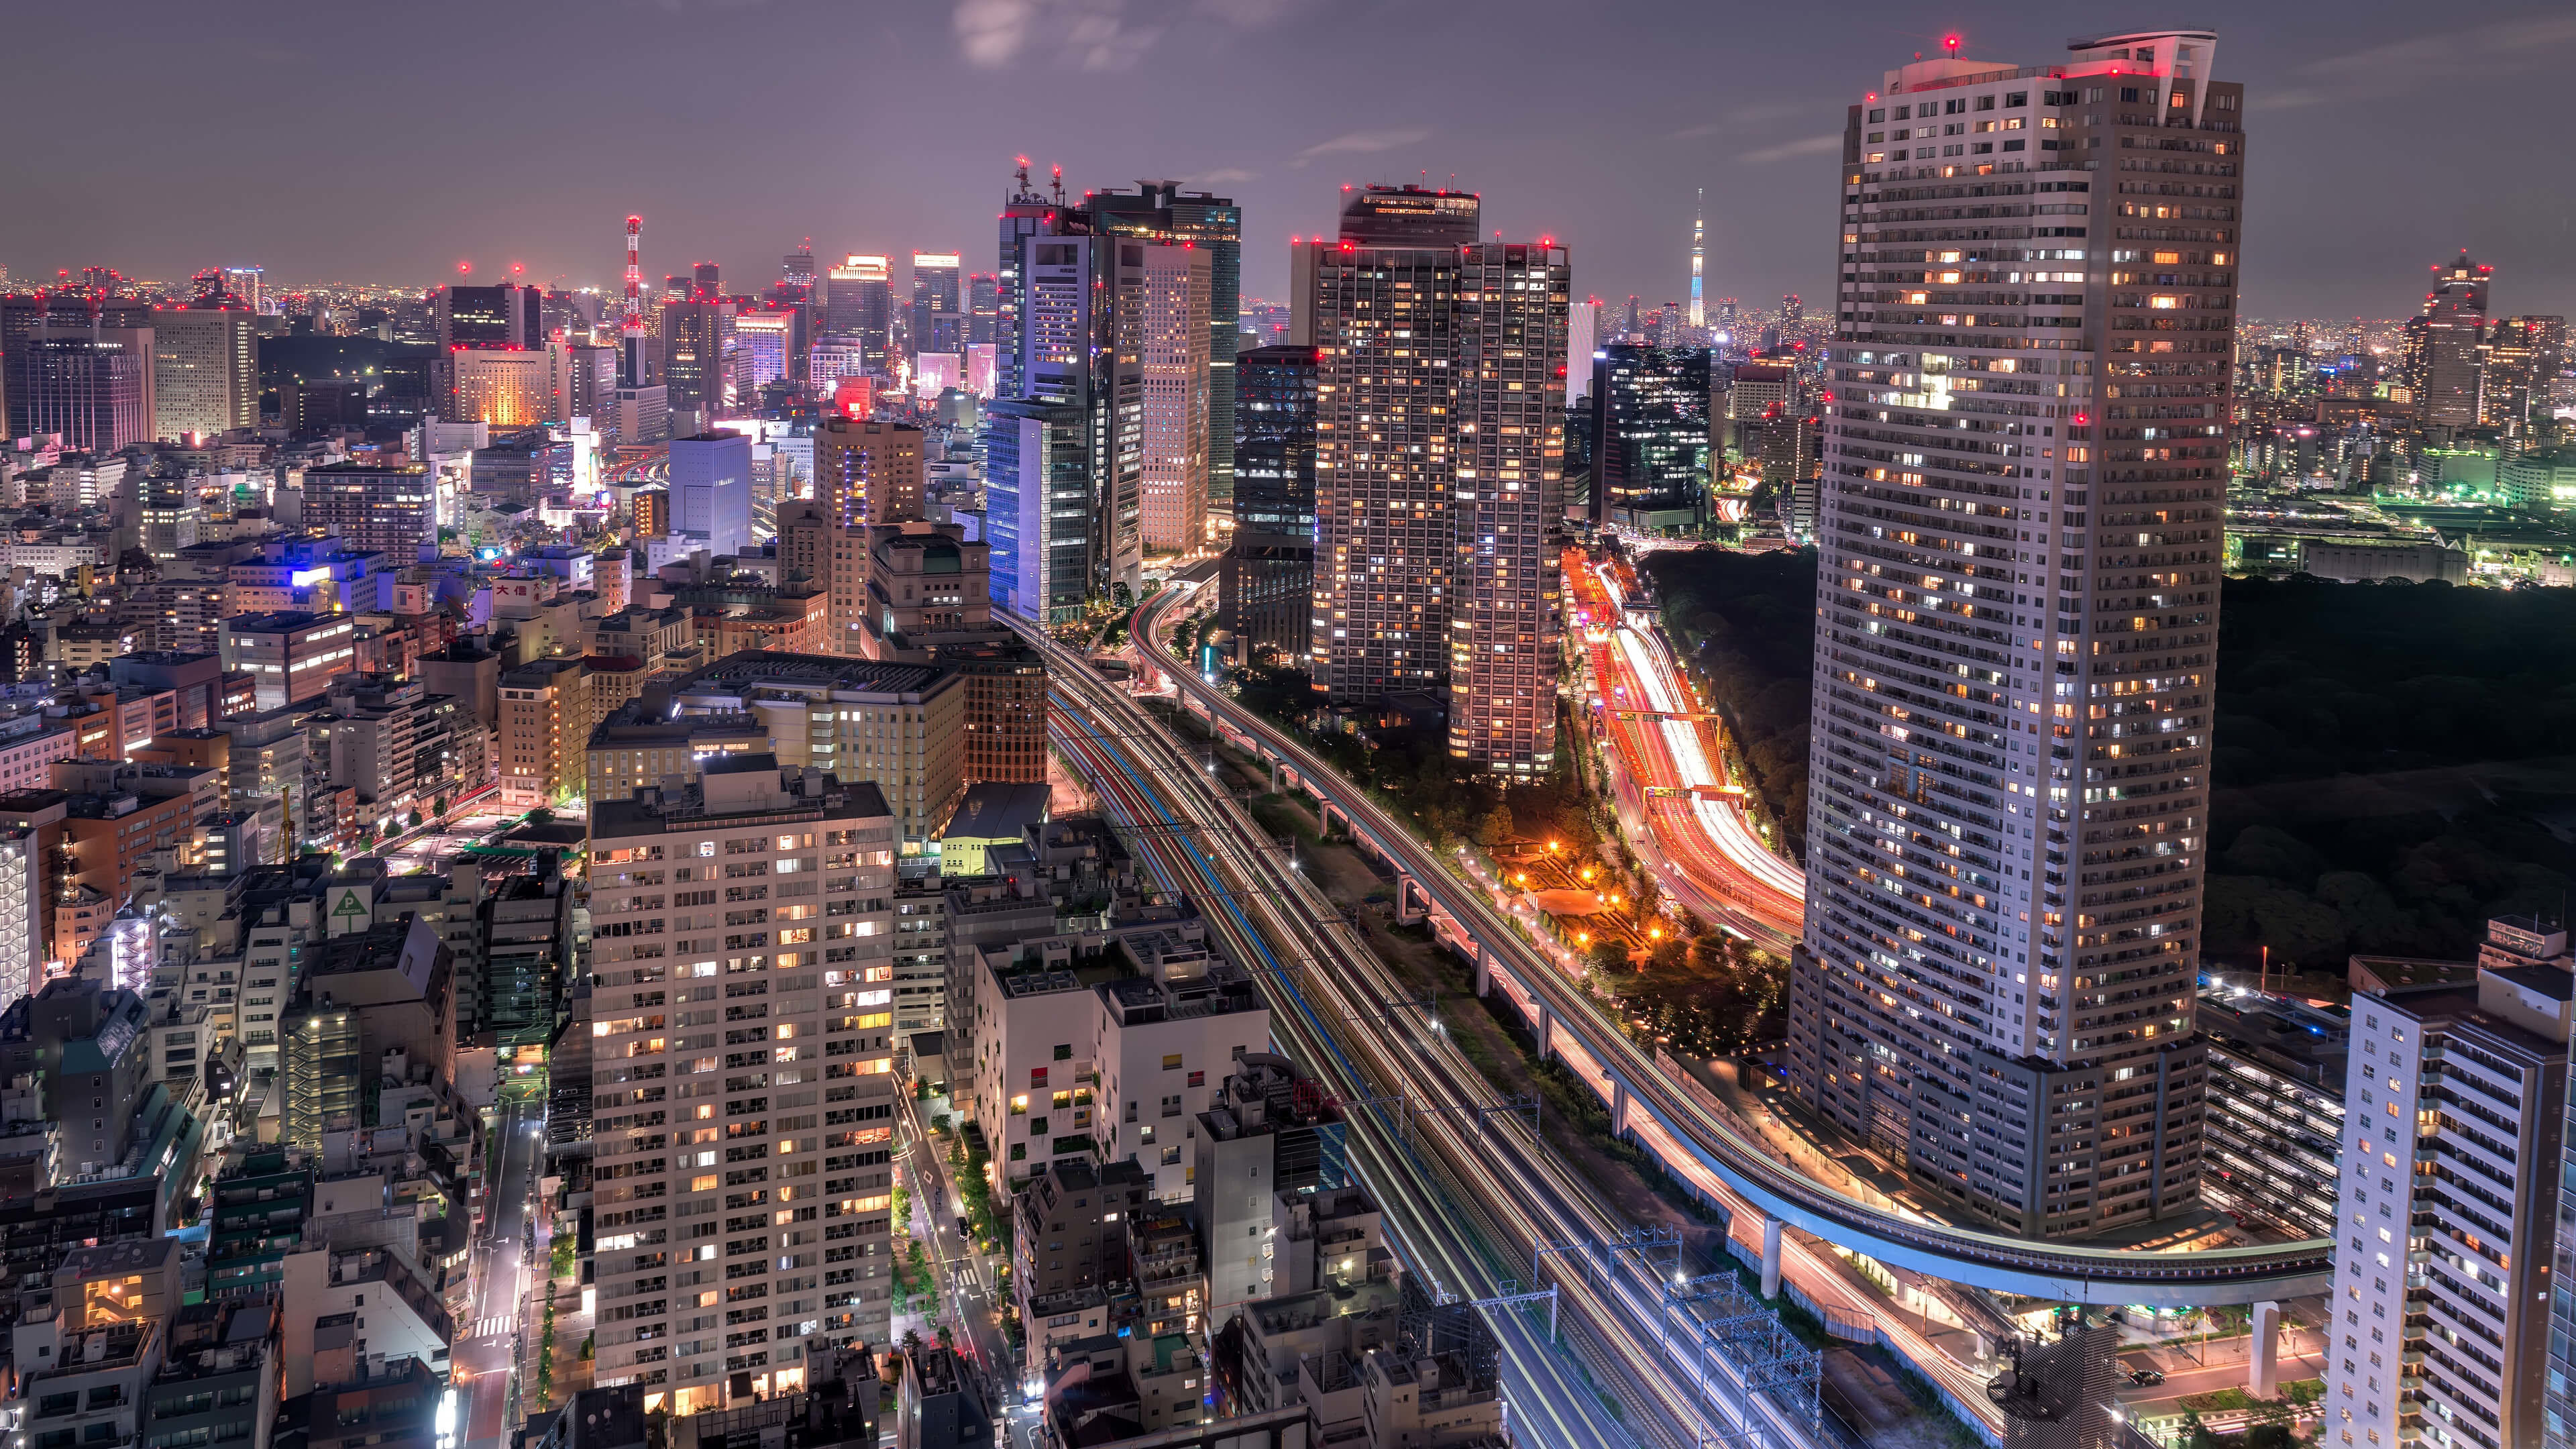 Res: 3840x2160, Tag: HQ Definition Tokyo City Wallpapers, Backgrounds and Pictures for  Free, Liza Layne